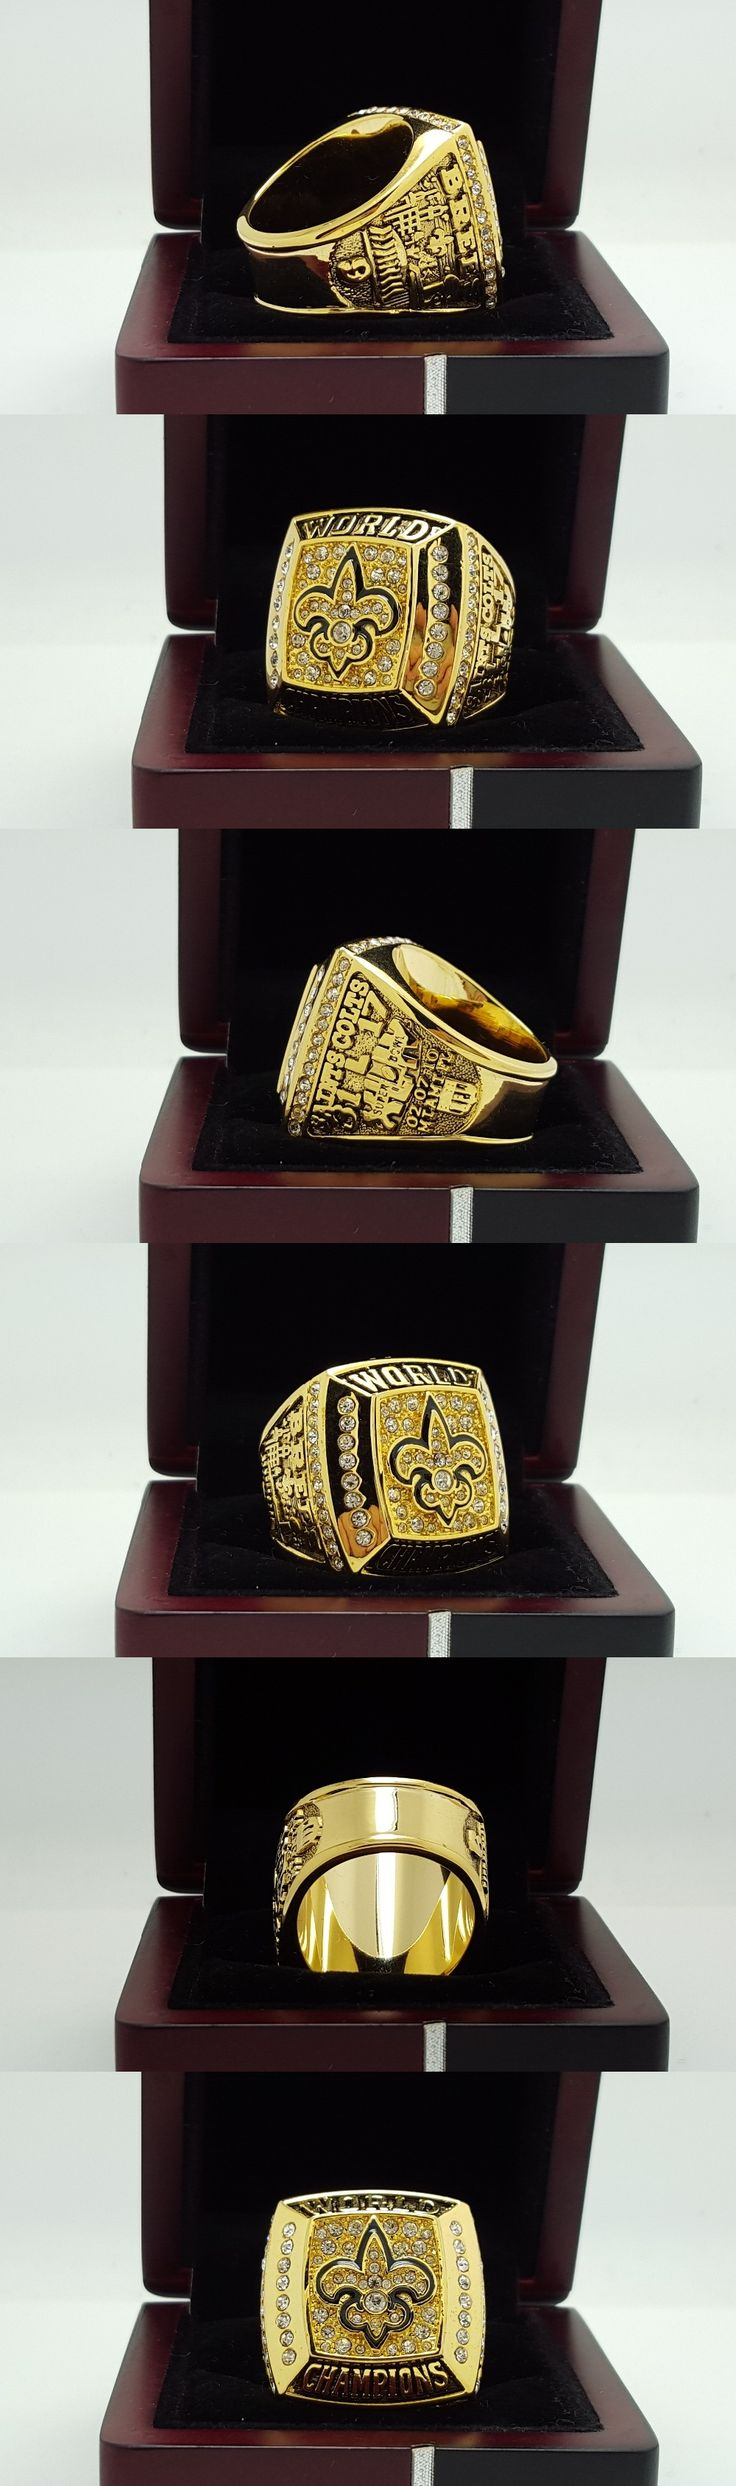 2009 New Orleans Saints super bowl Championship ring  8-14 Size  High quality, it is worth collecting